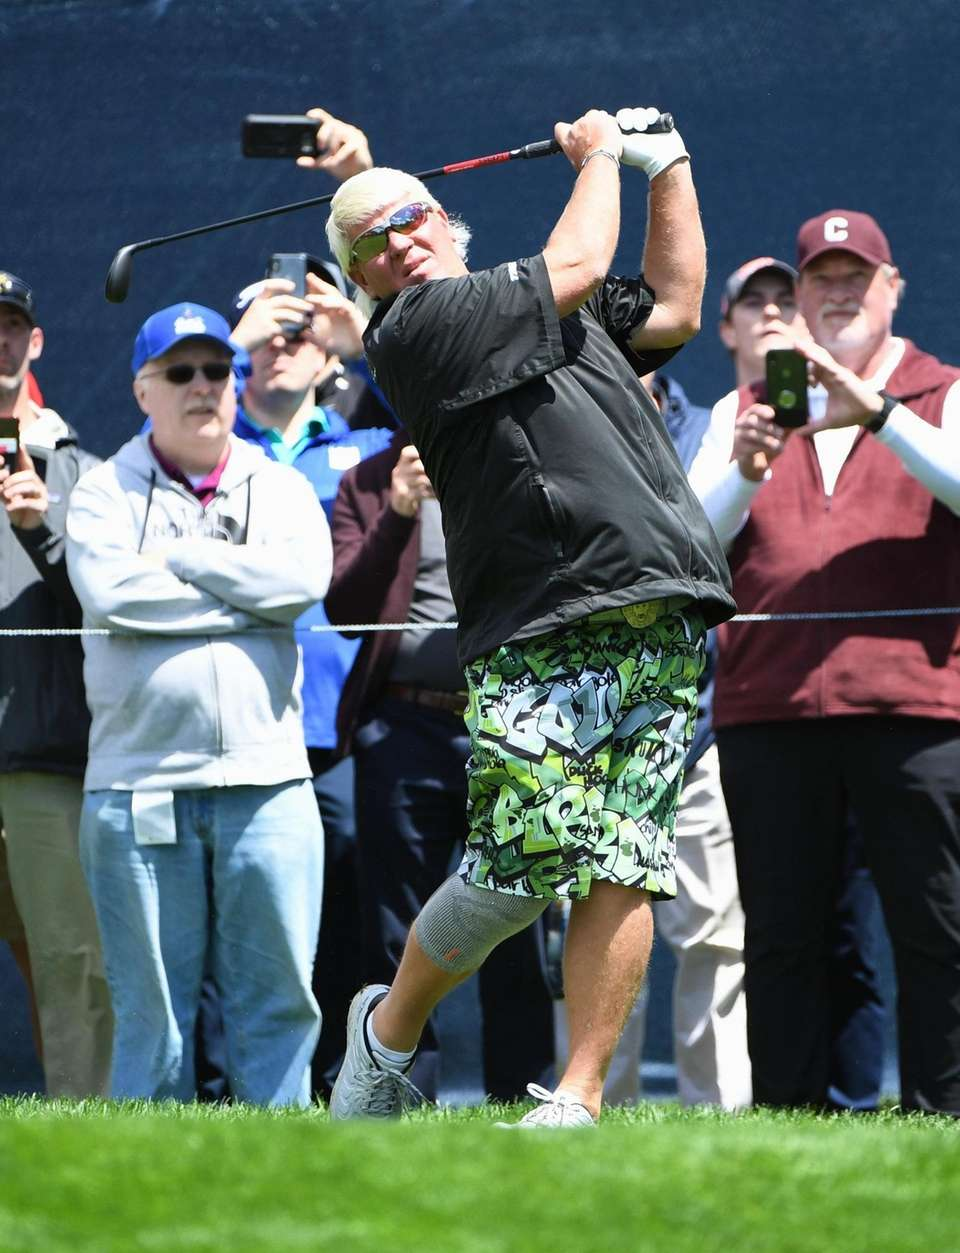 John Daly tees off at the 3rd hole